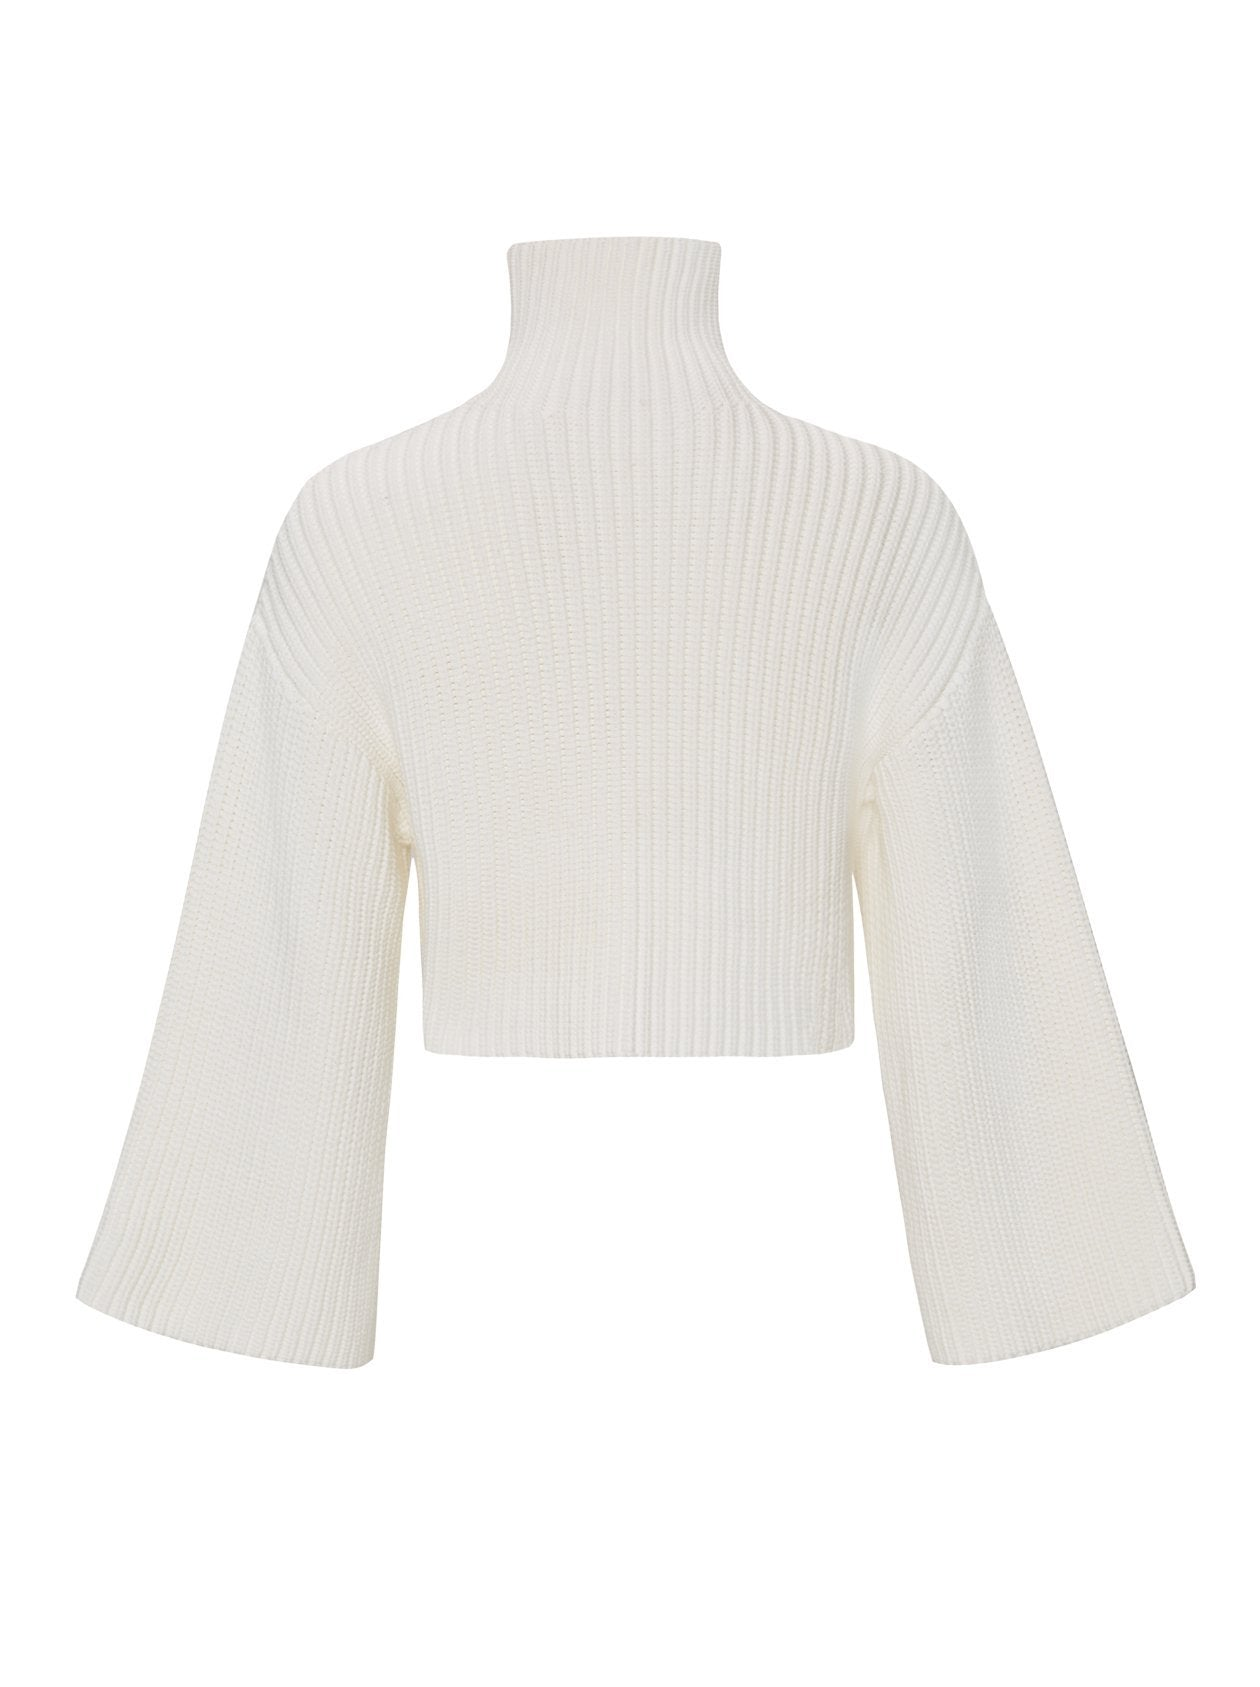 Product 4678467059798, CORDED VISCOSE SWEATER - LAPOINTE